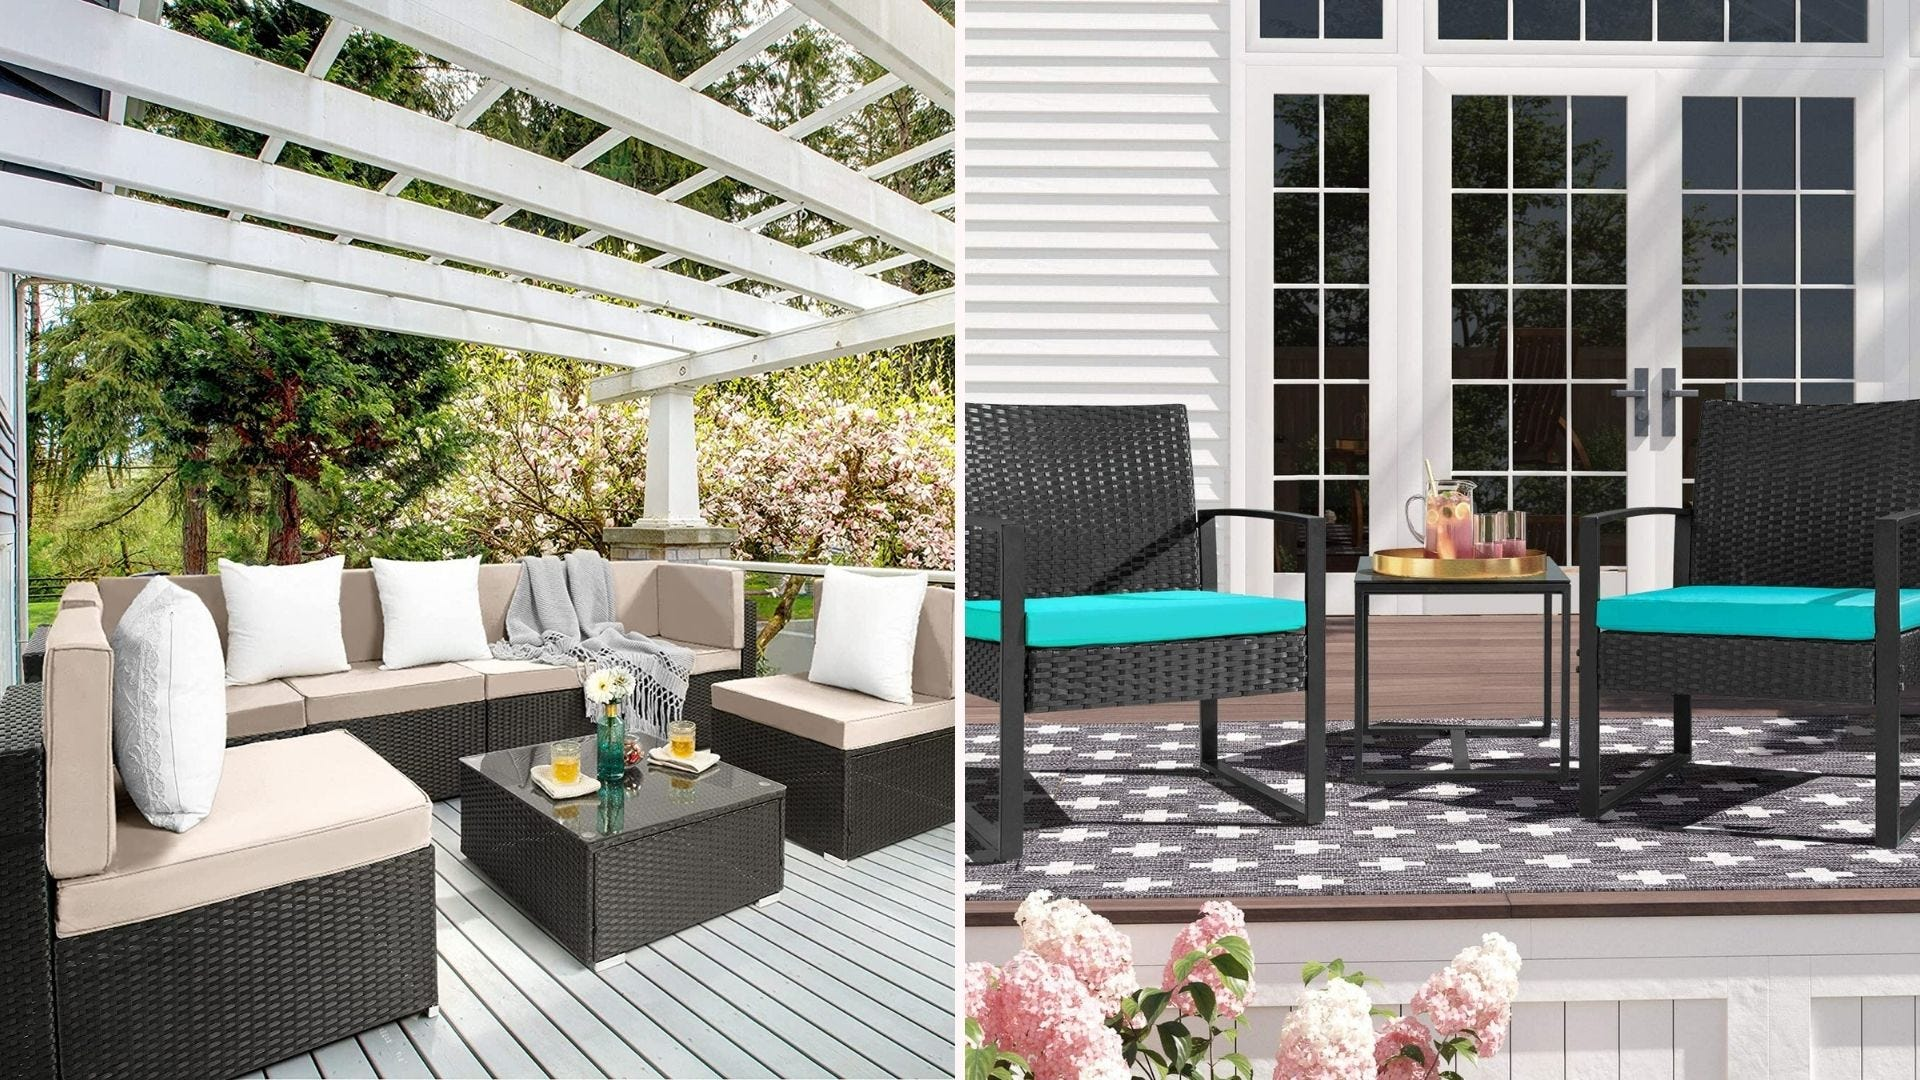 A beige outdoor sectional set; a pair of black patio chairs with teal cushions on a patio